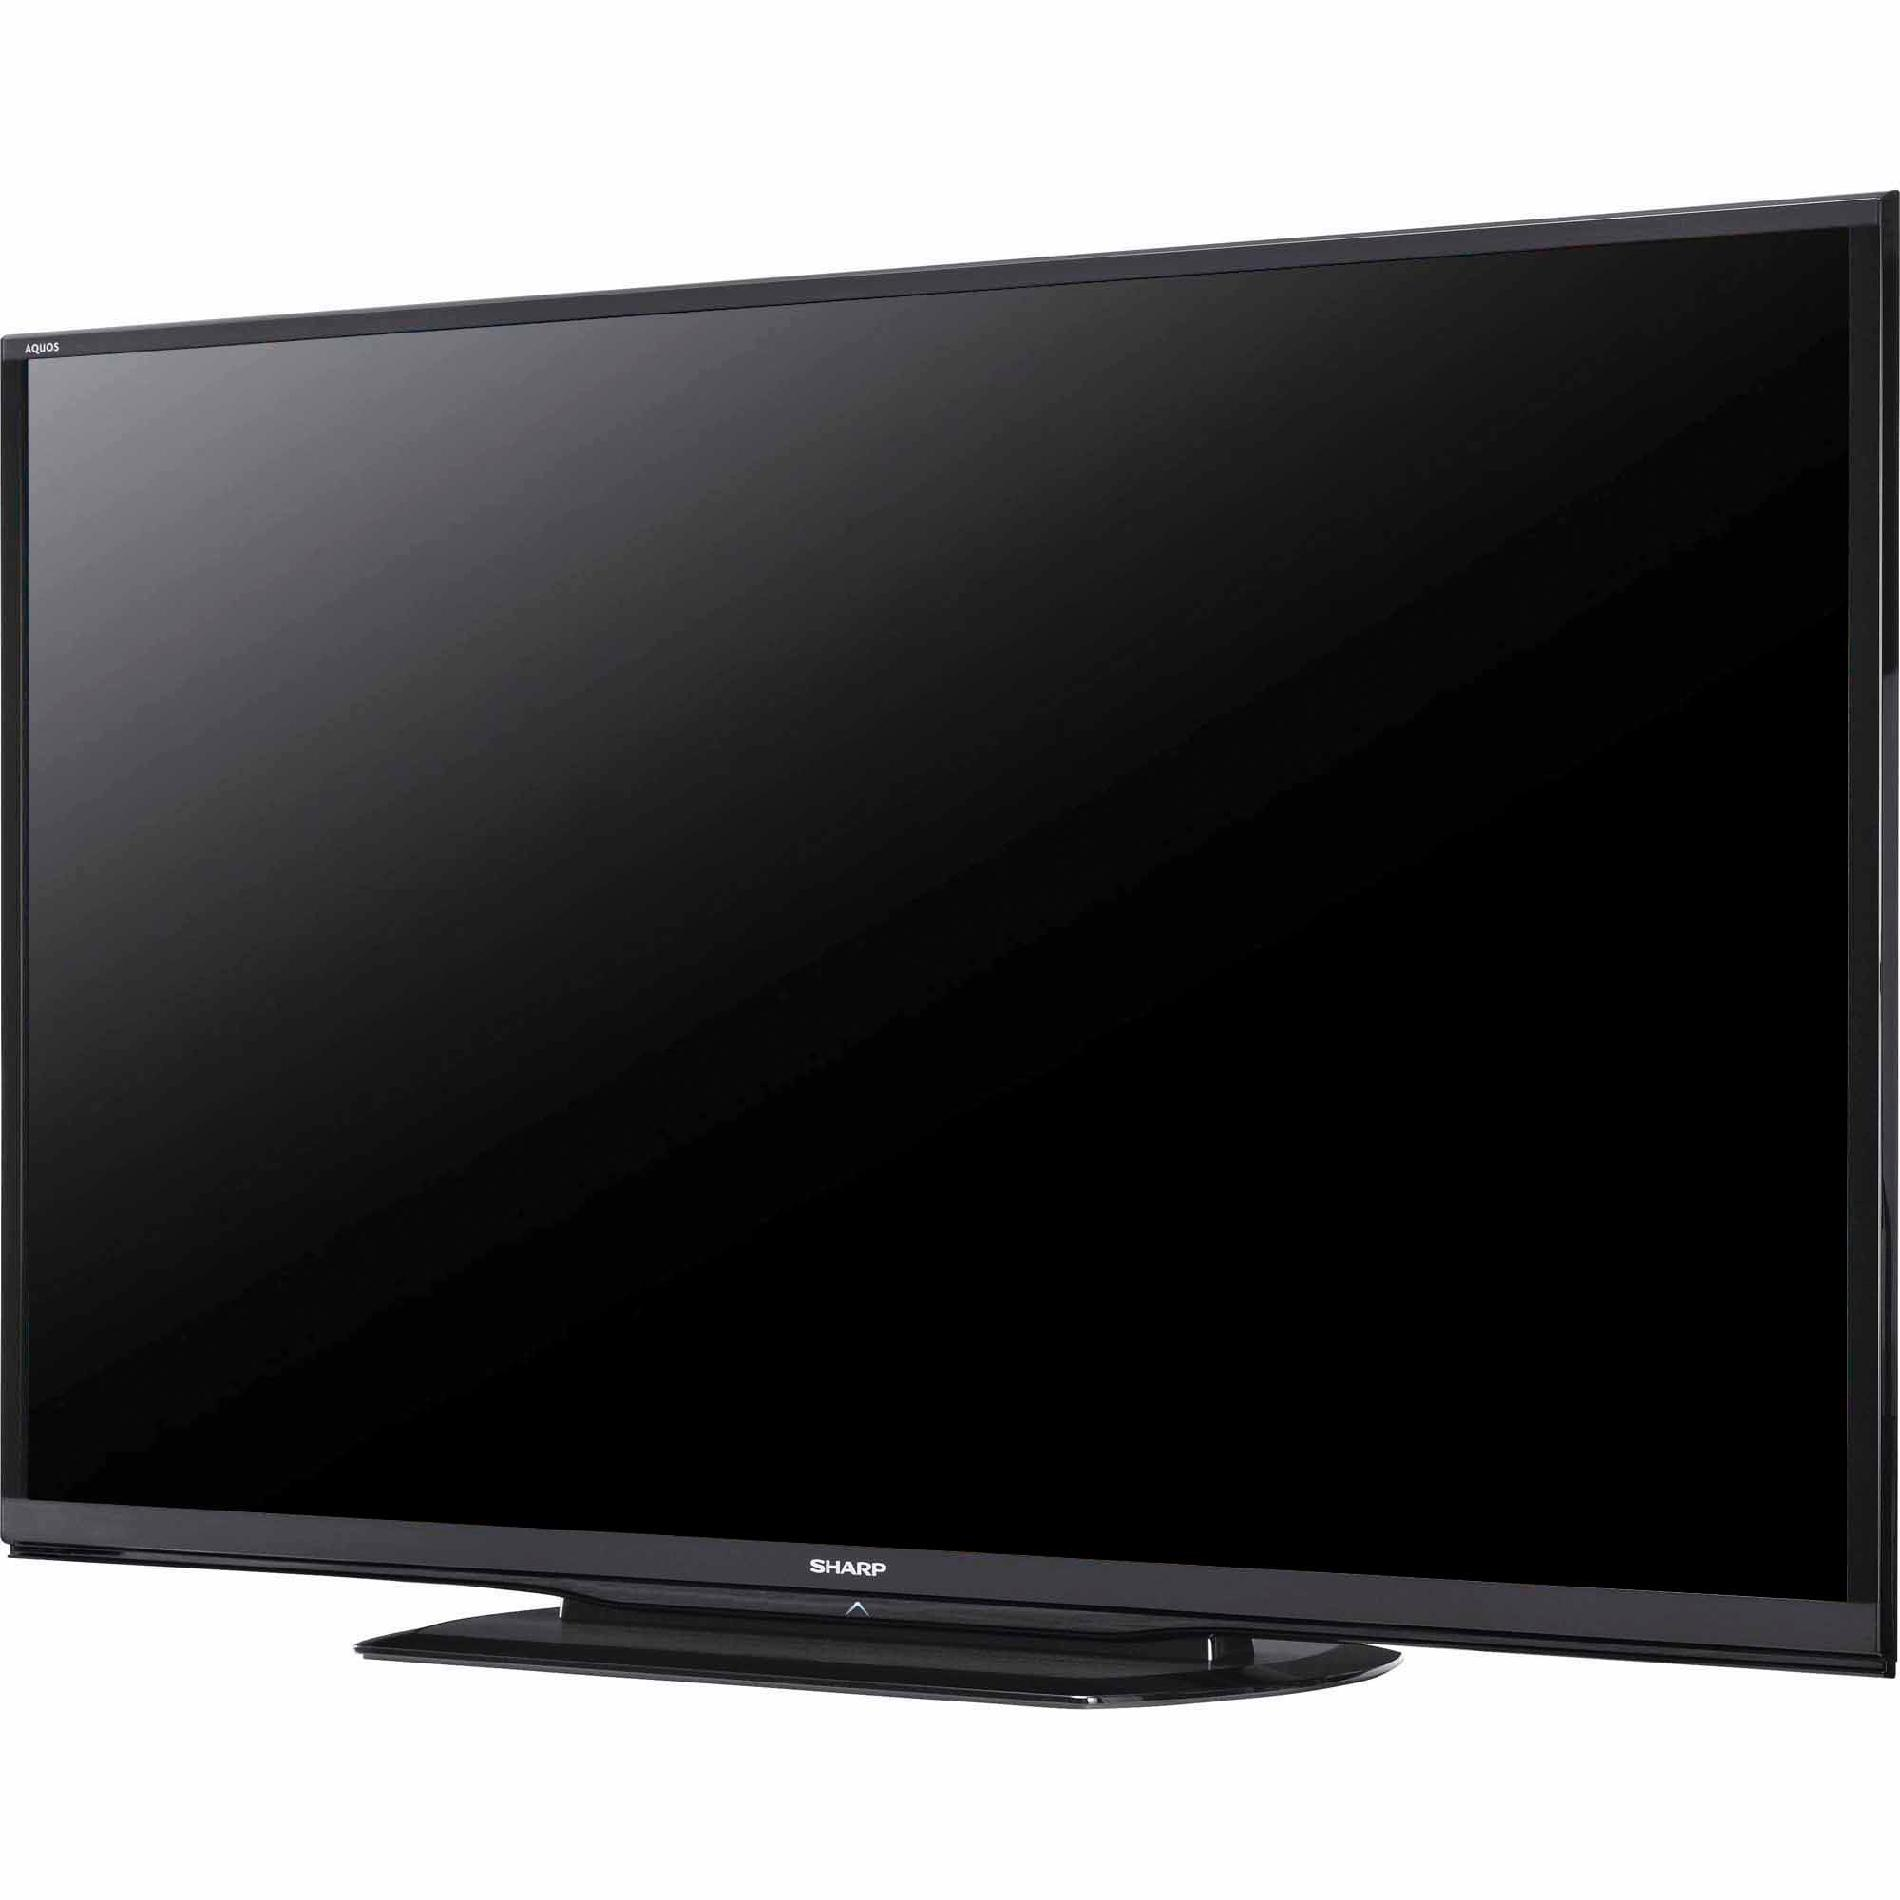 "Sharp AQUOS 70"" 1080p 120hz LED Smart HDTV - LC70LE650U"